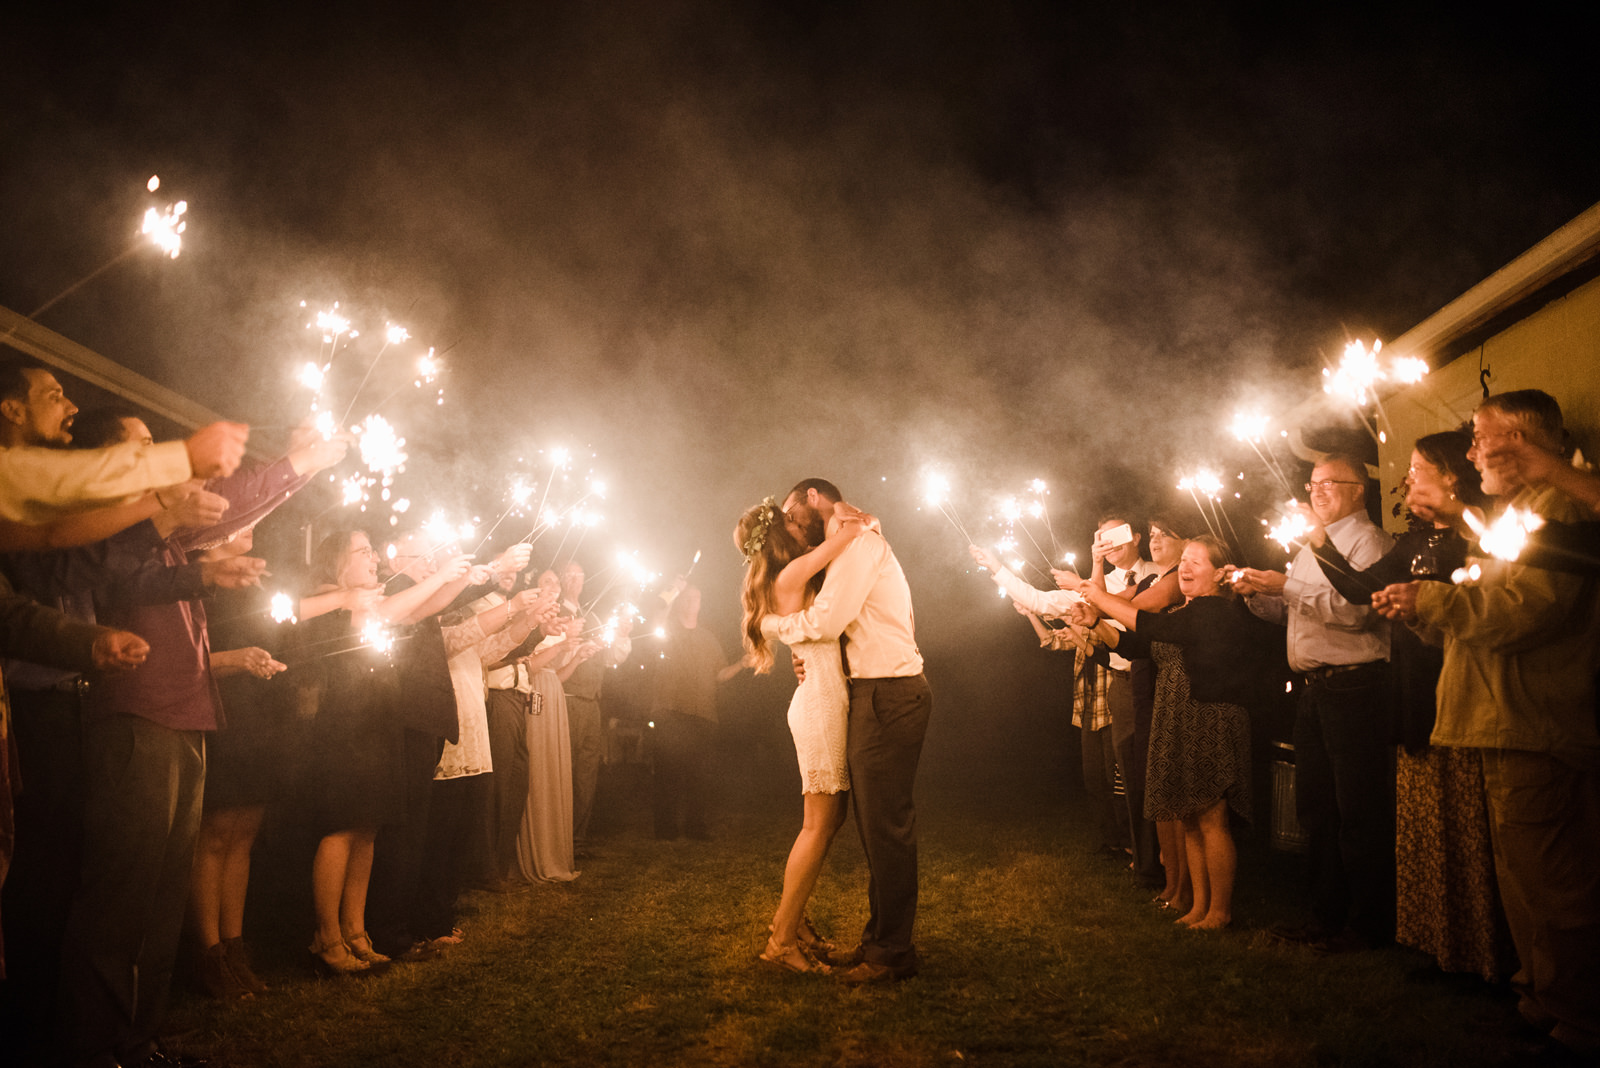 087-joyful-sparkler-exit-captured-by-best-seattle-wedding-photographer-ryan-flynn.jpg